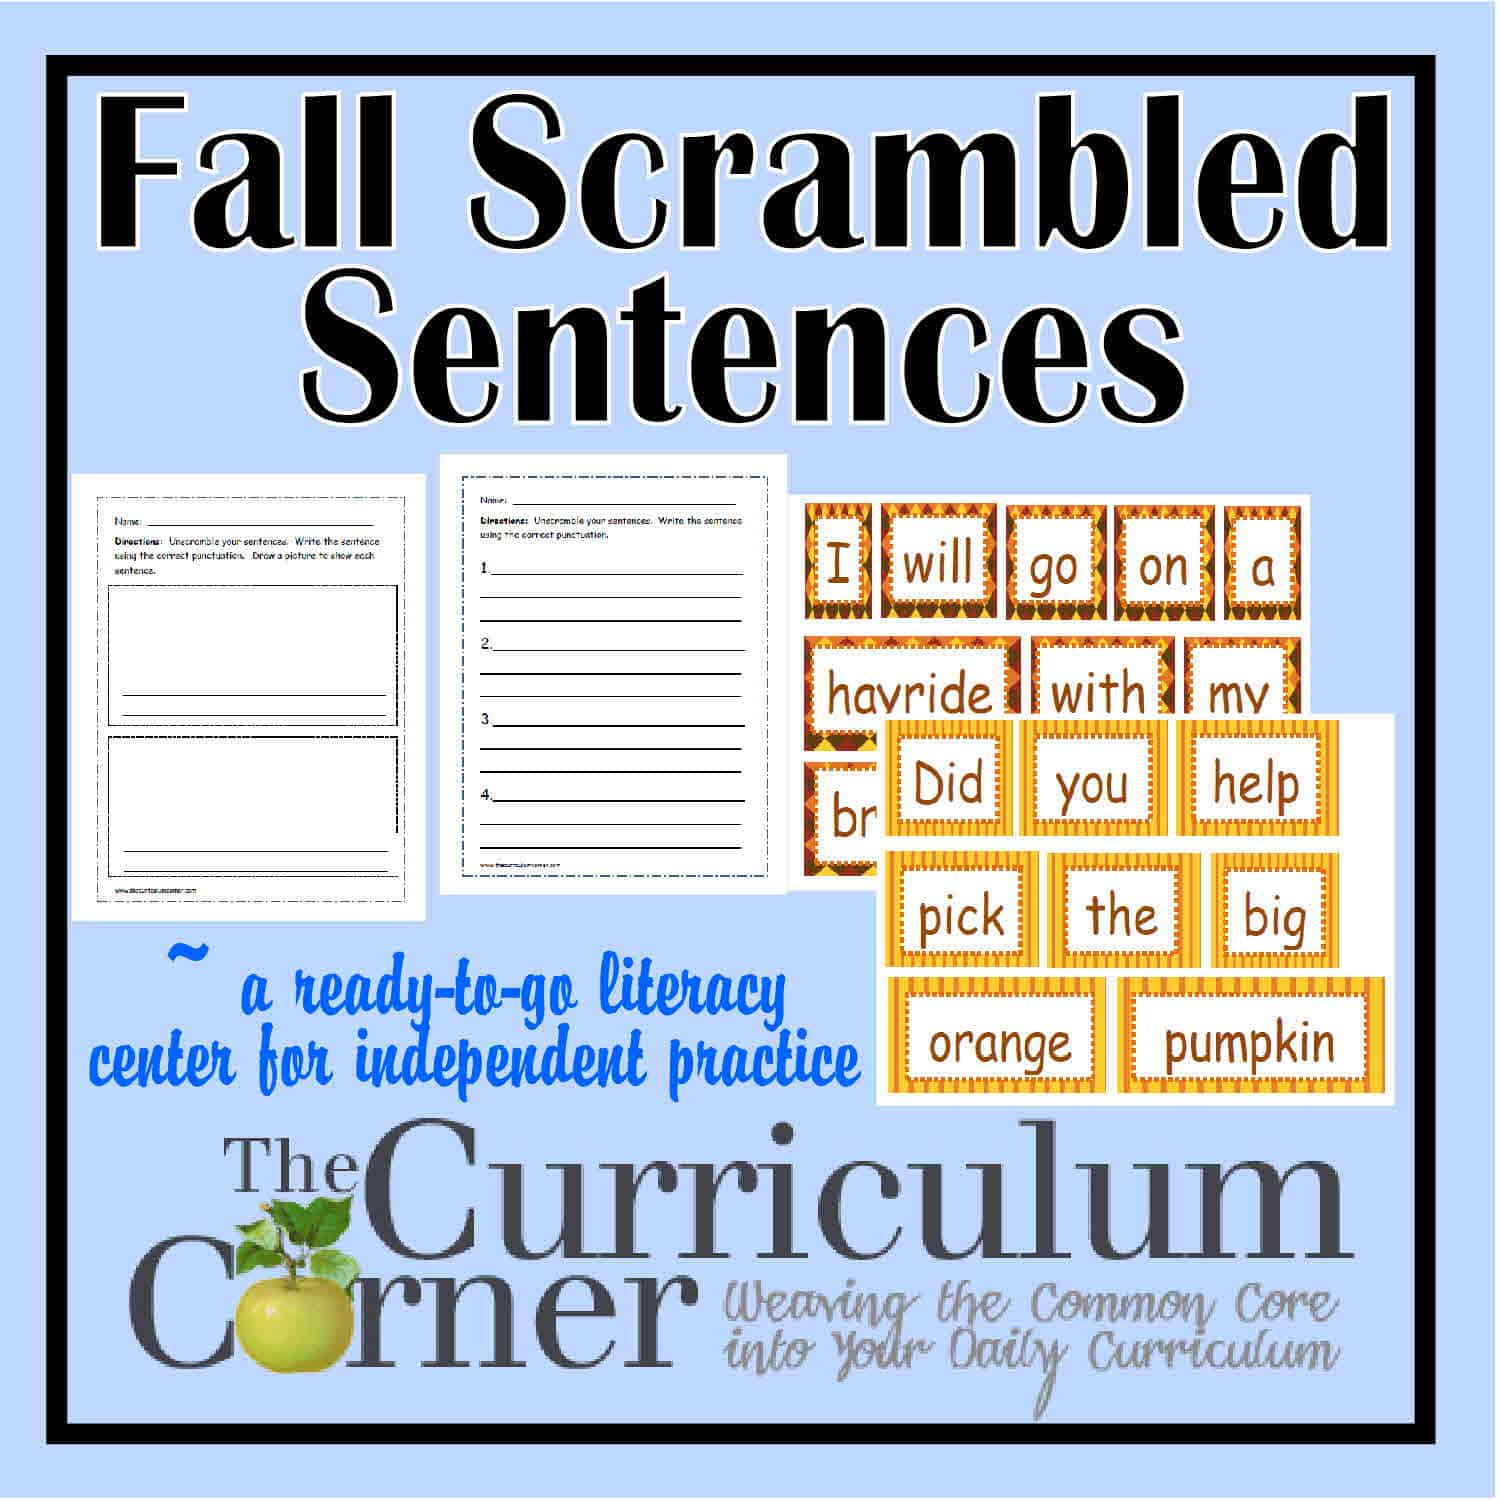 Fall Scrambled Sentences